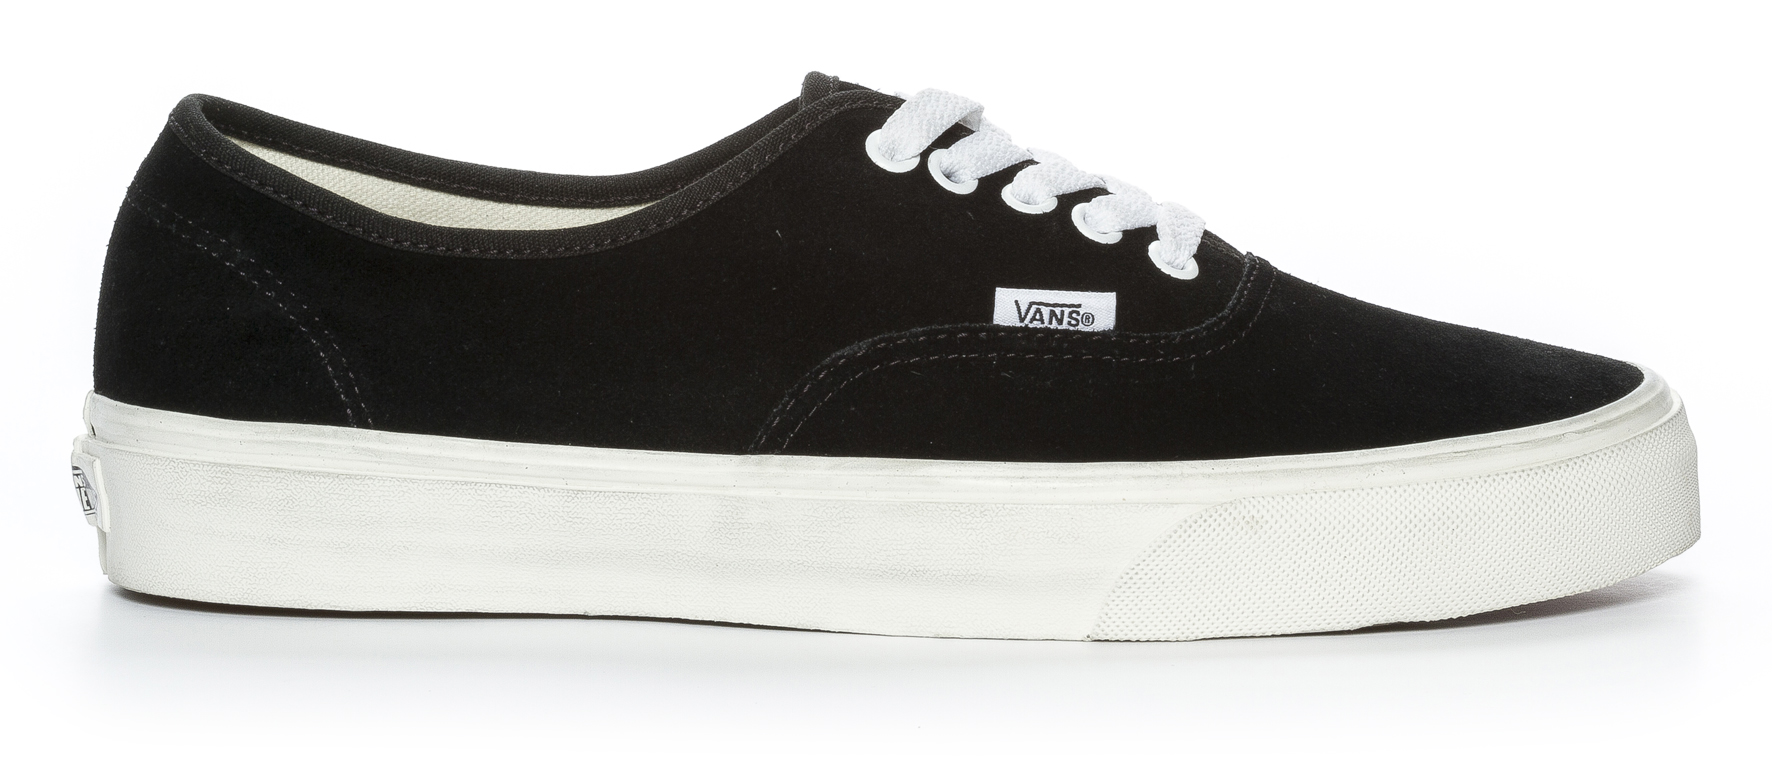 half off aad9c 089e2 Vans Authentic Suede - Musta 289181 feetfirst.fi